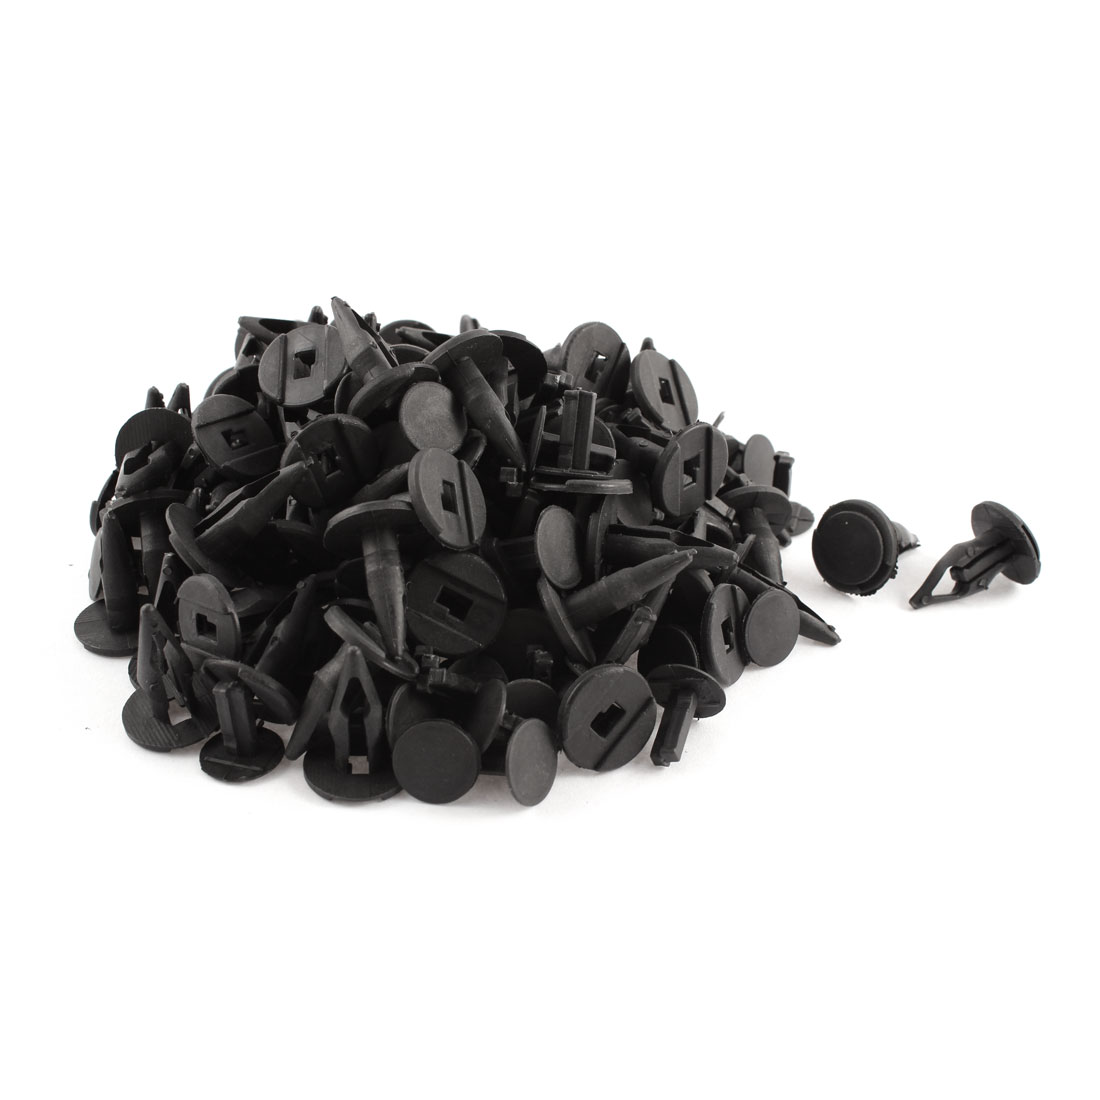 100 Pcs Black Plastic Rivet Trim Fastener Retainer Clips 10mm x 17mm x 22mm